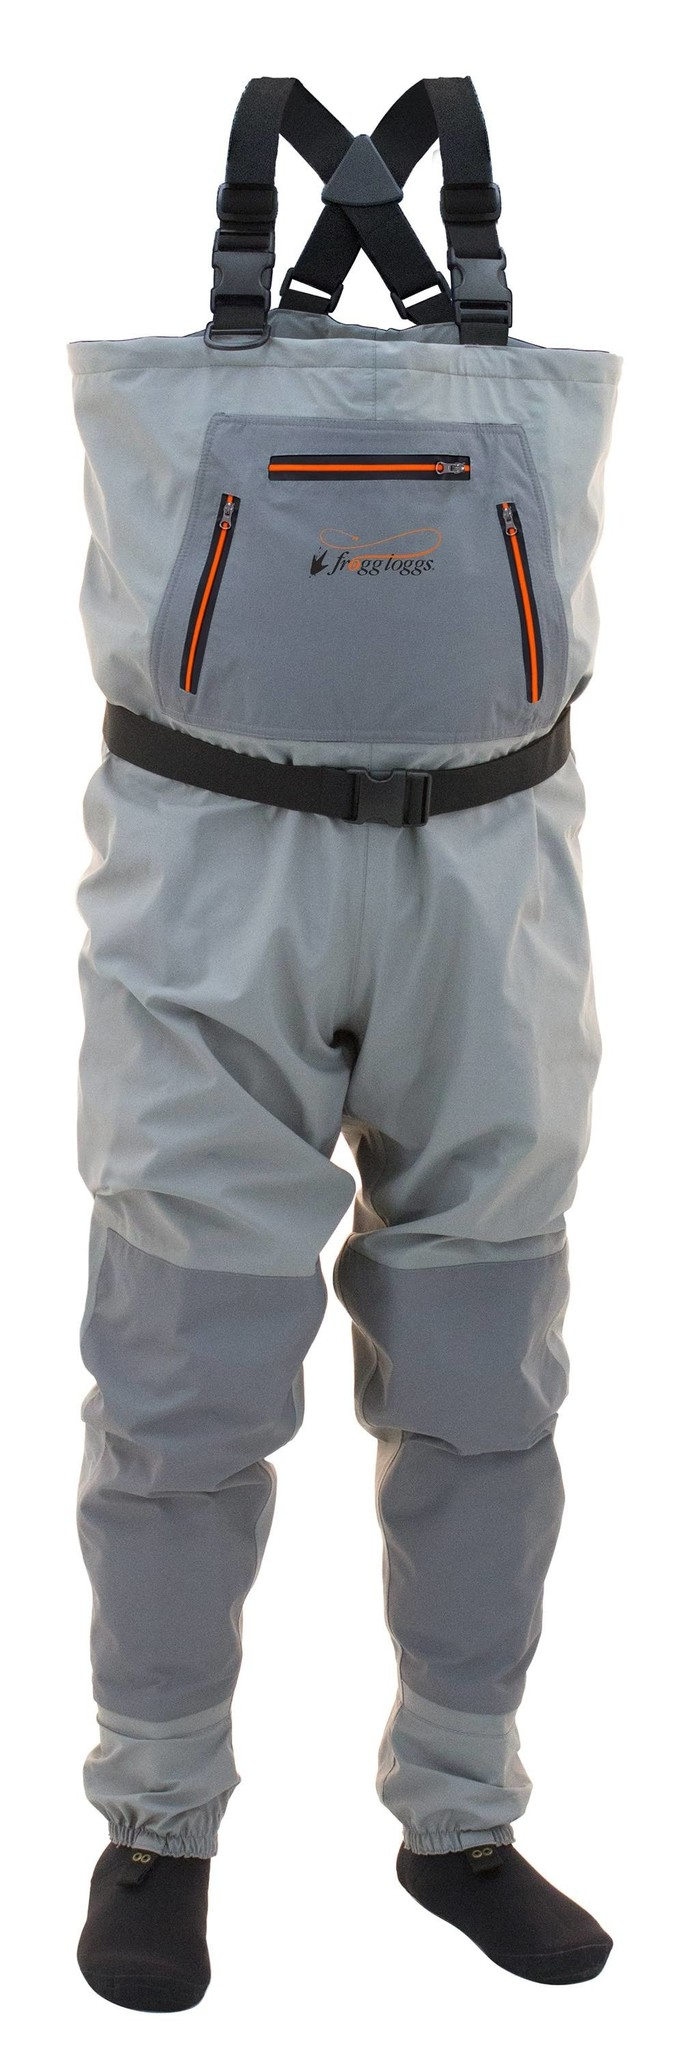 Frogg Togg Hellbender Stockingfoot Breathable Waders - Youth